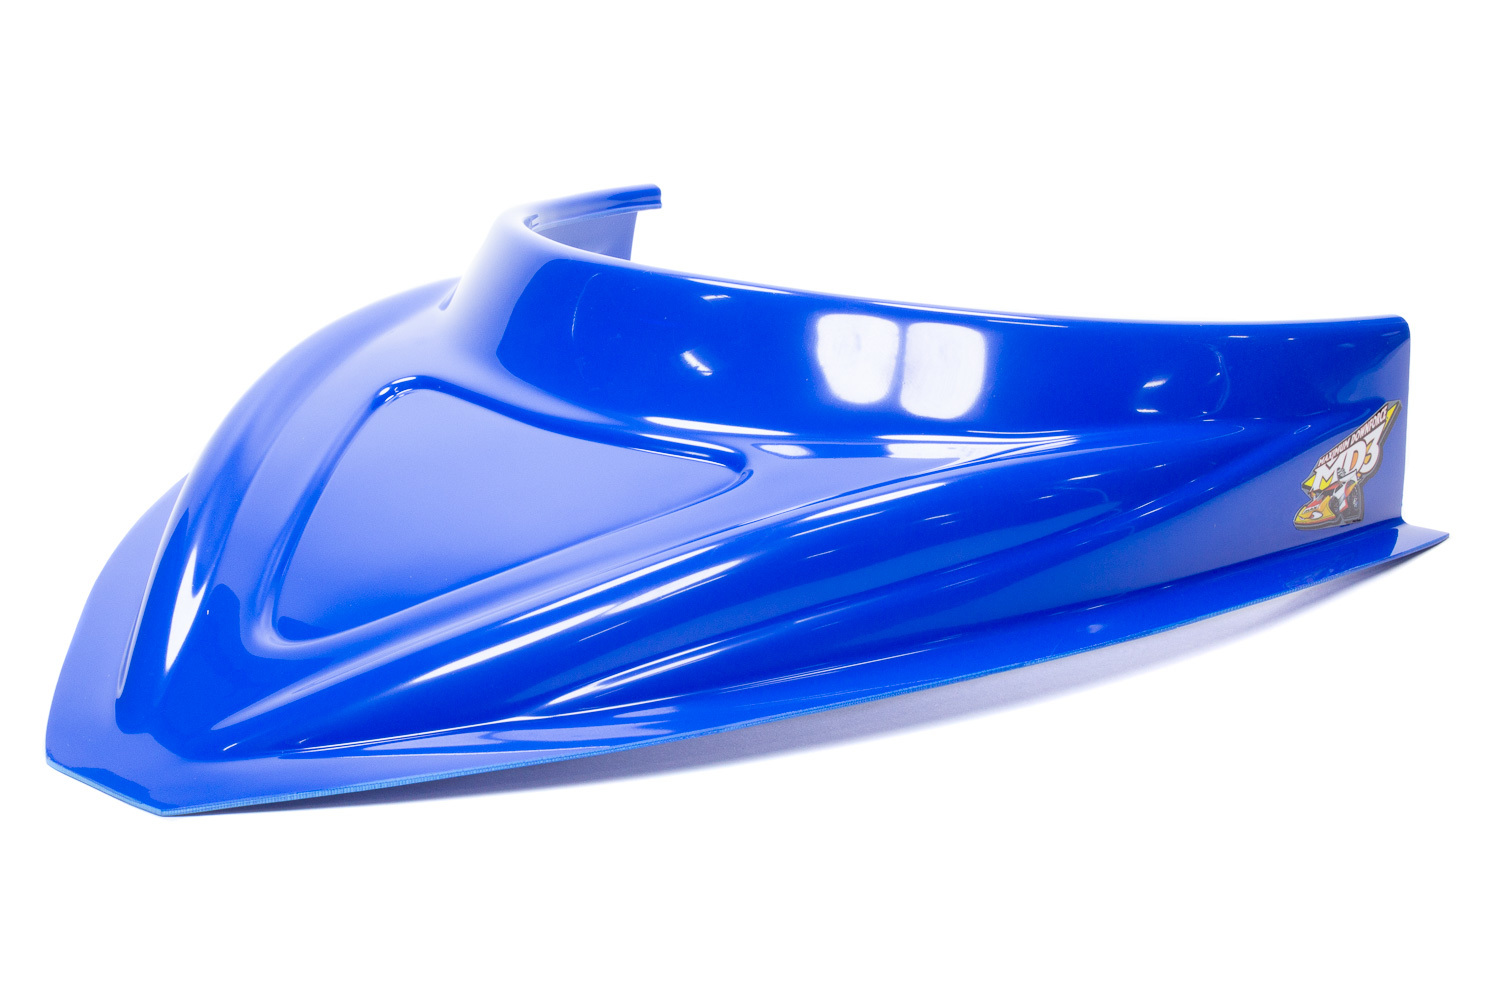 Fivestar MD3 Hood Scoop 3in Tall Curved Chevron Blue